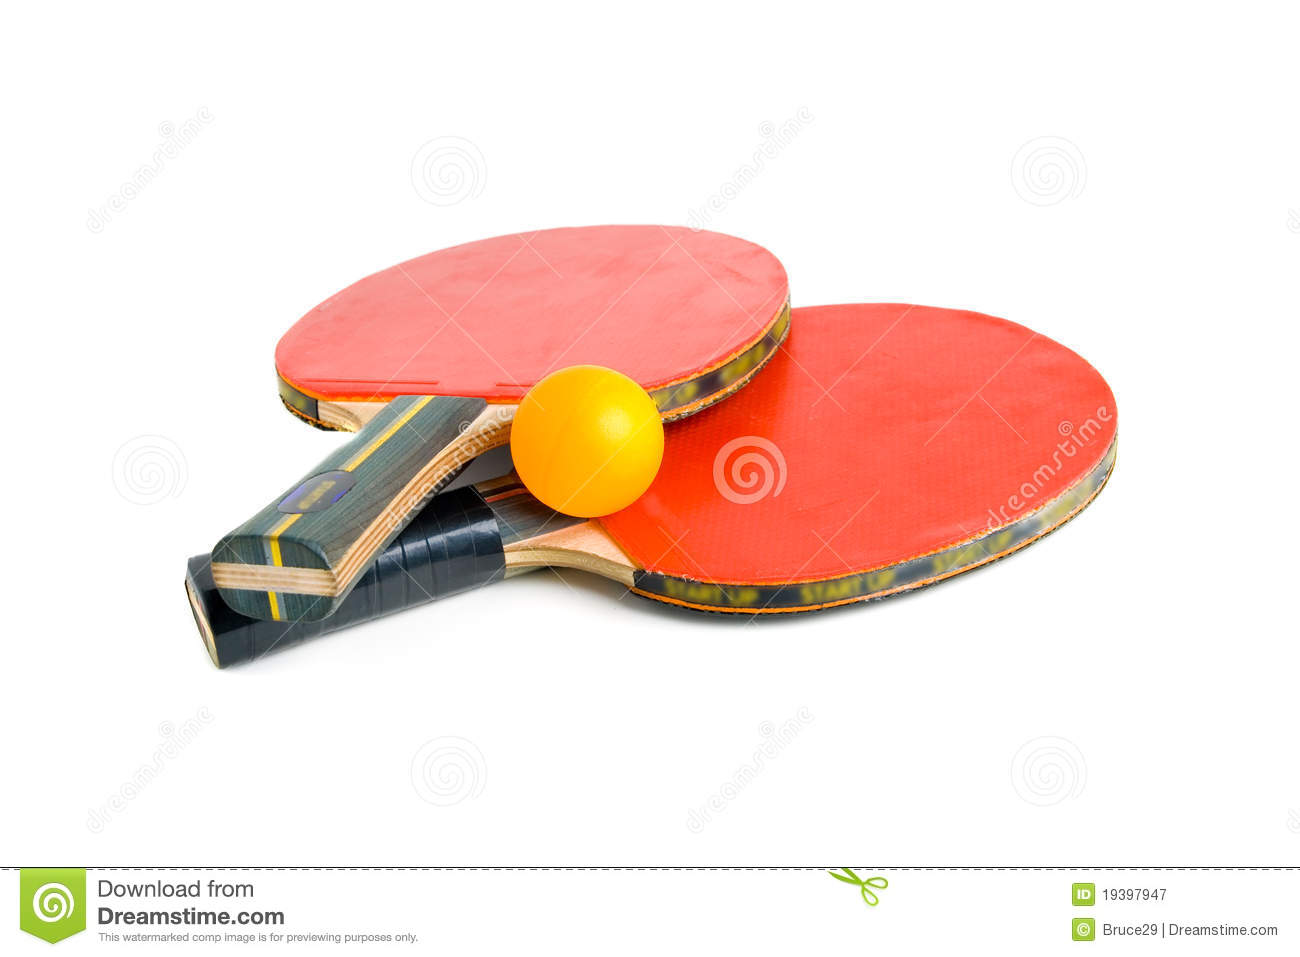 Table Tennis Bats with Ball.